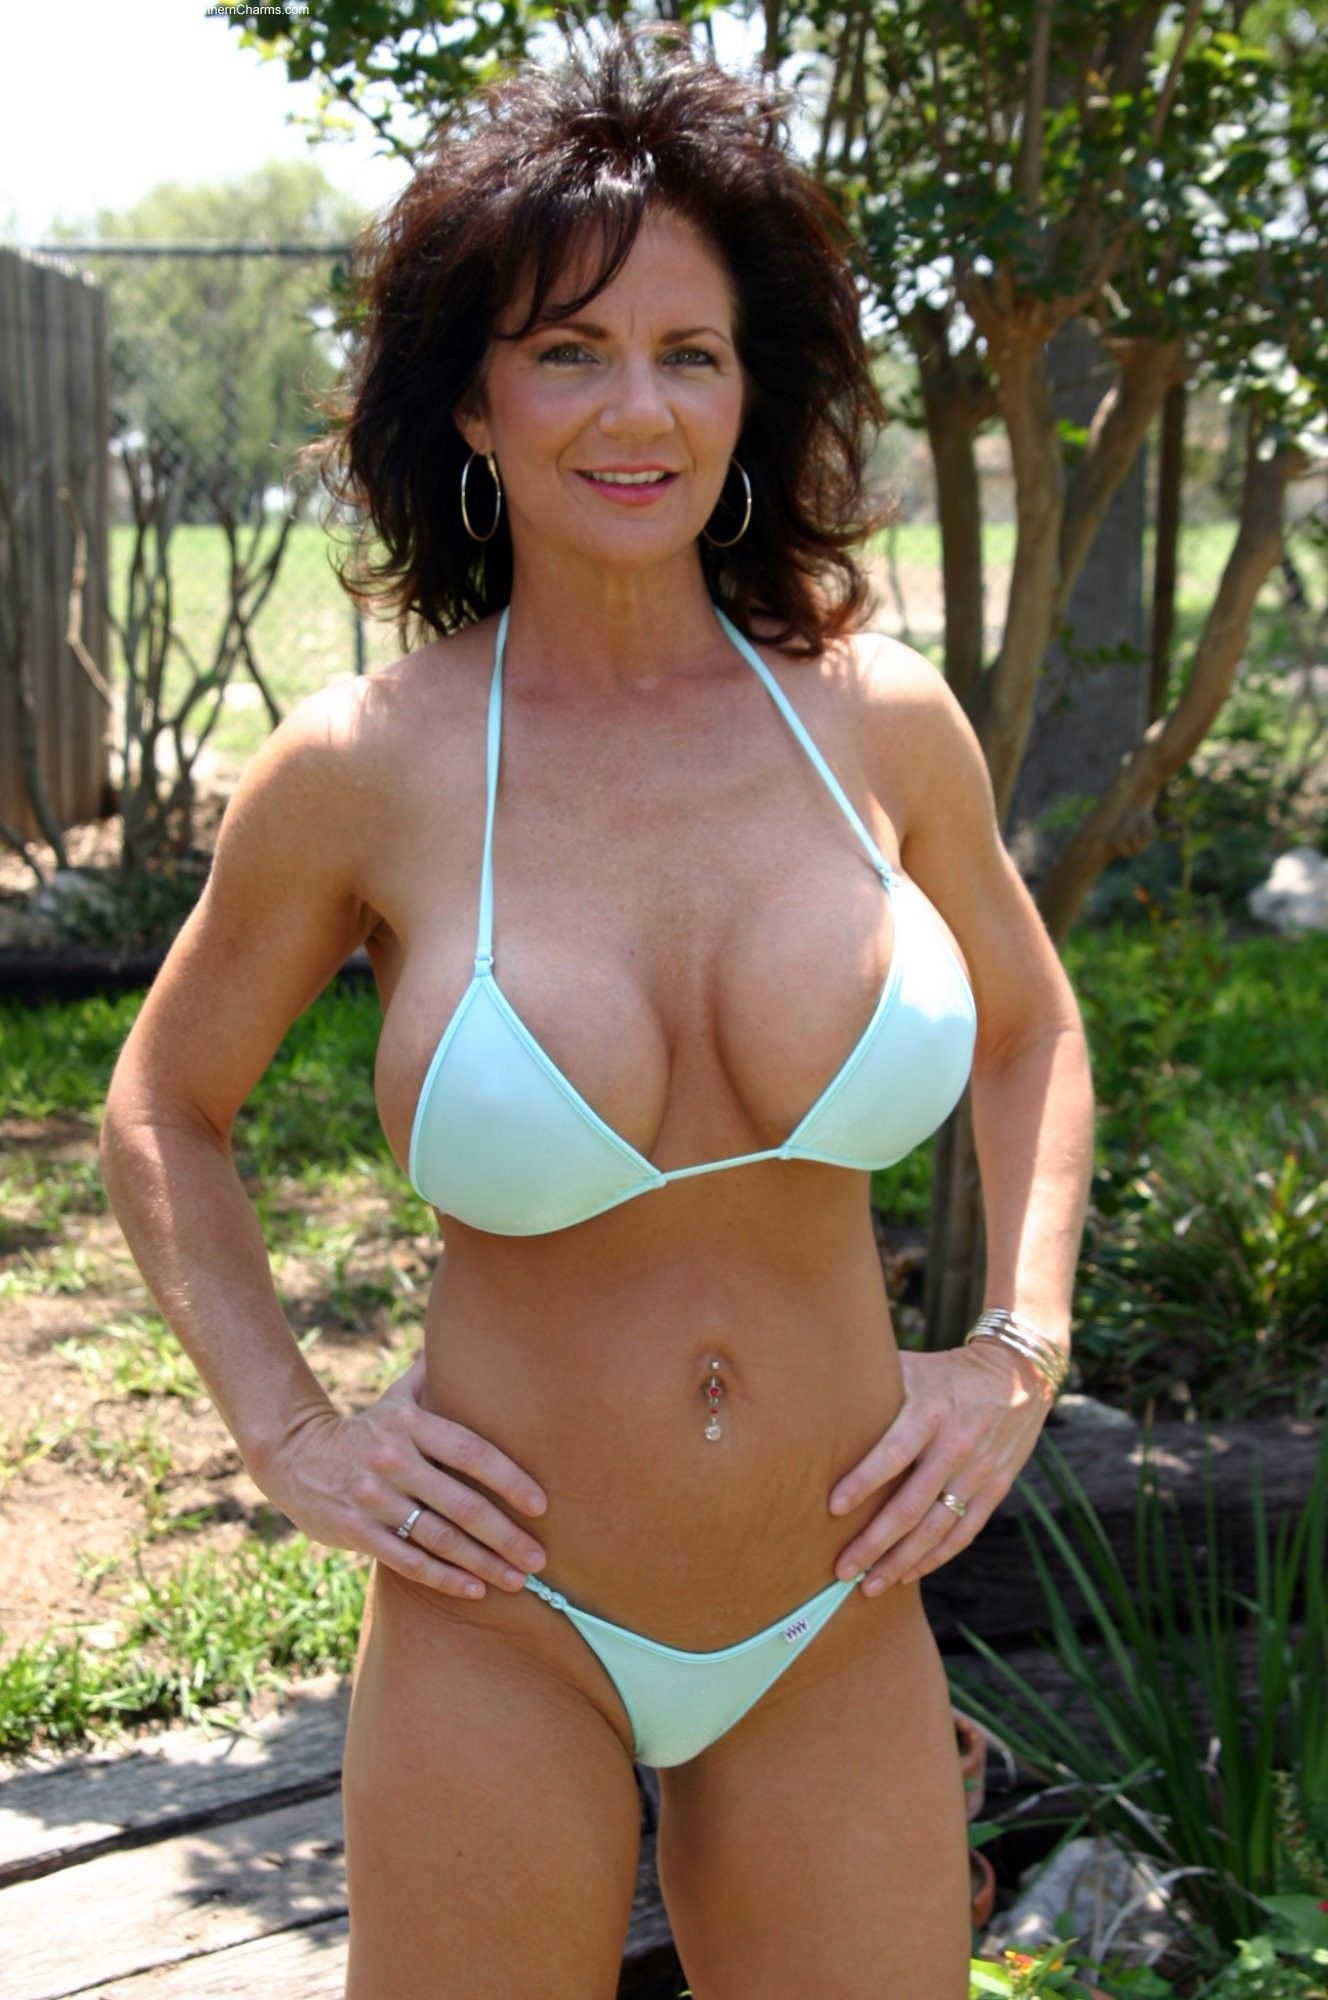 Hot in mature swimsuit woman